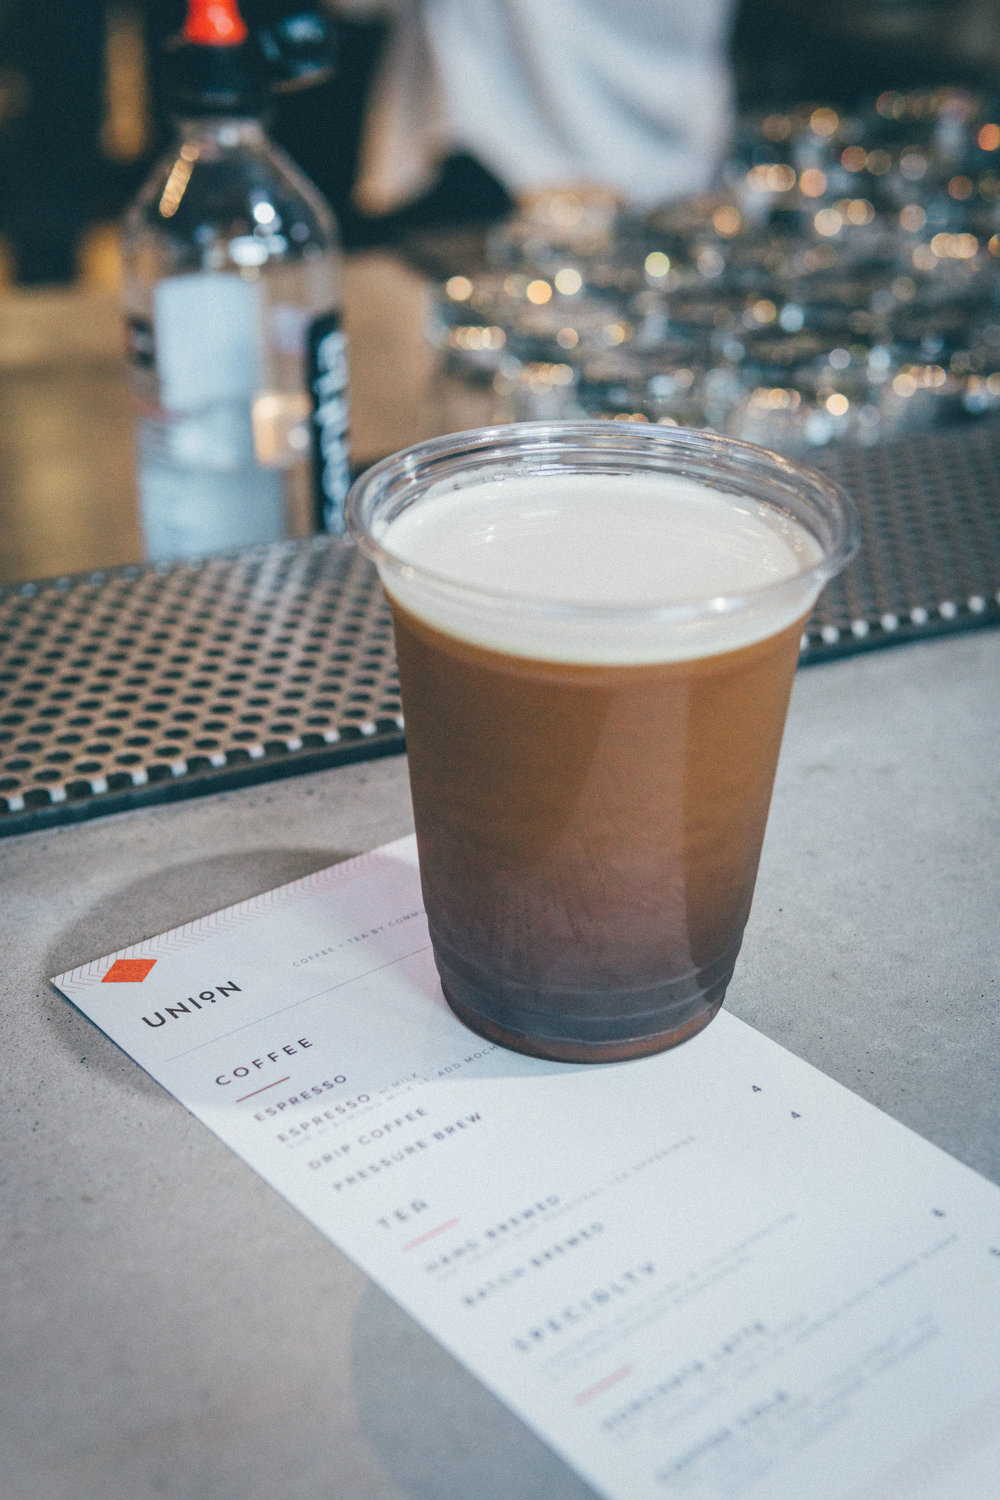 Pressure Brew from Union by Commune + Co. at Heights Public Market